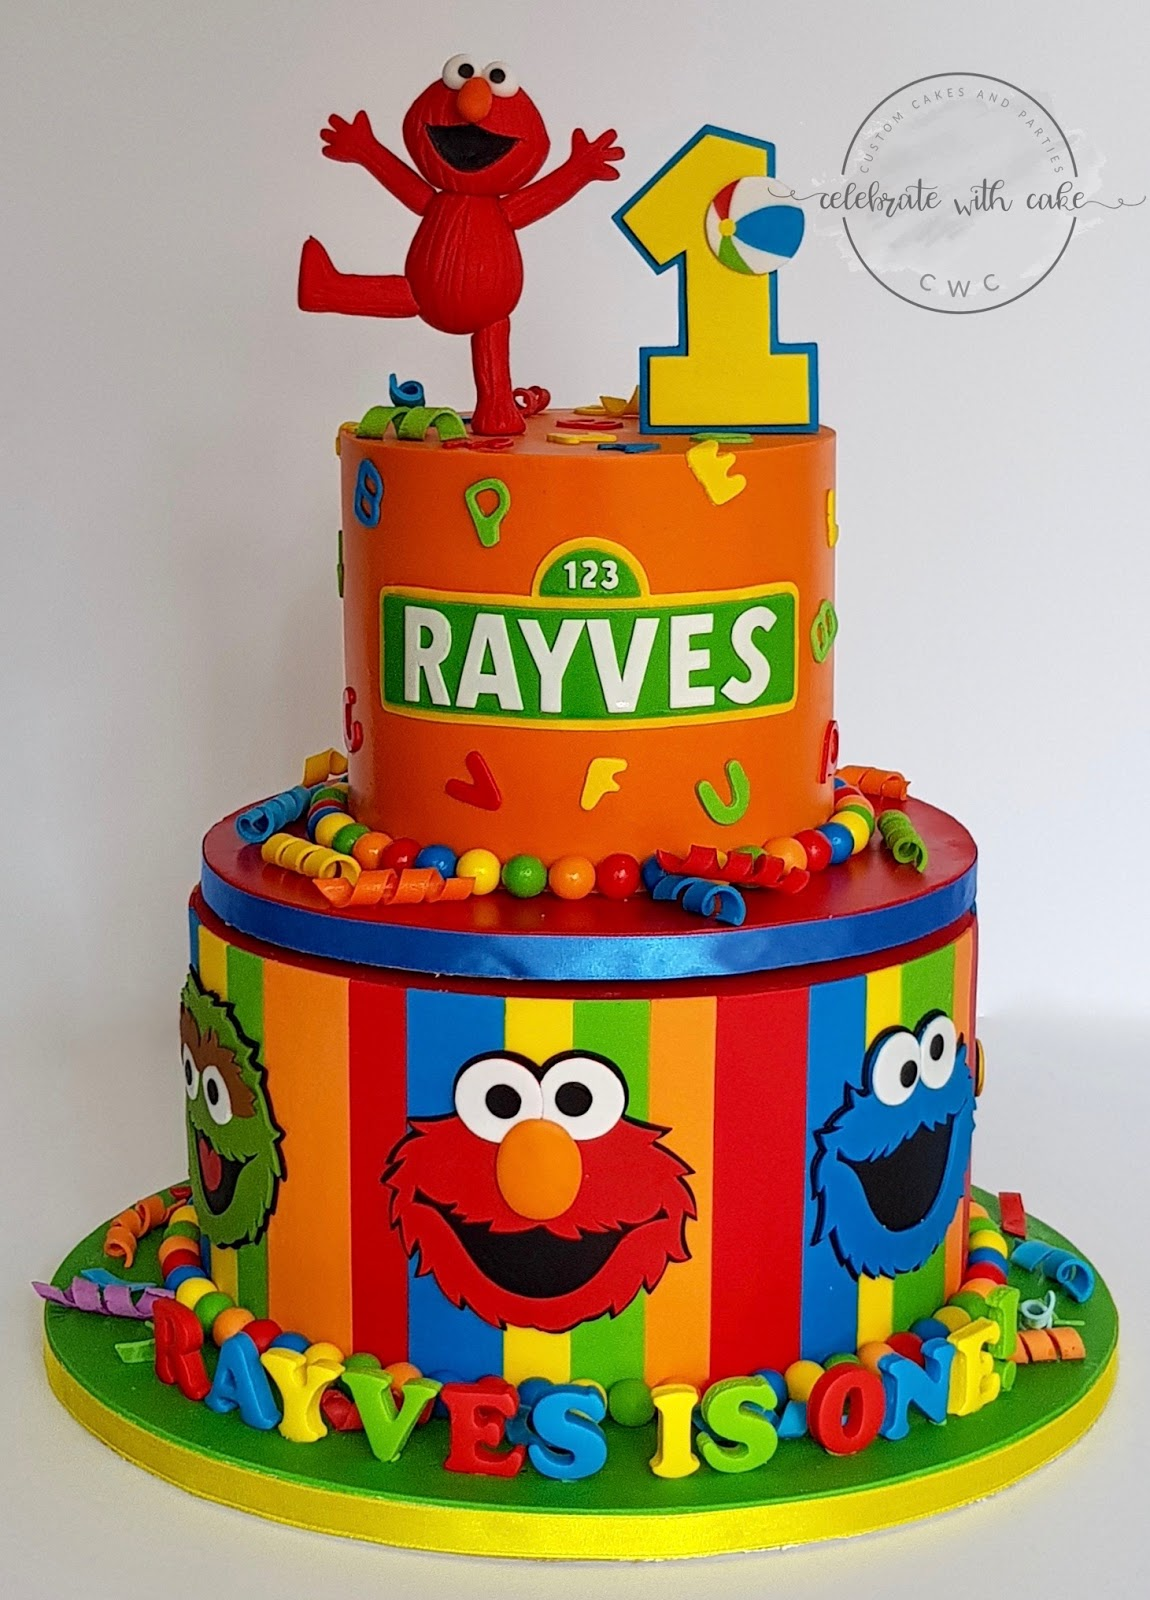 Stupendous Celebrate With Cake Rotating Sesame Street Themed 1St Birthday Cake Personalised Birthday Cards Paralily Jamesorg